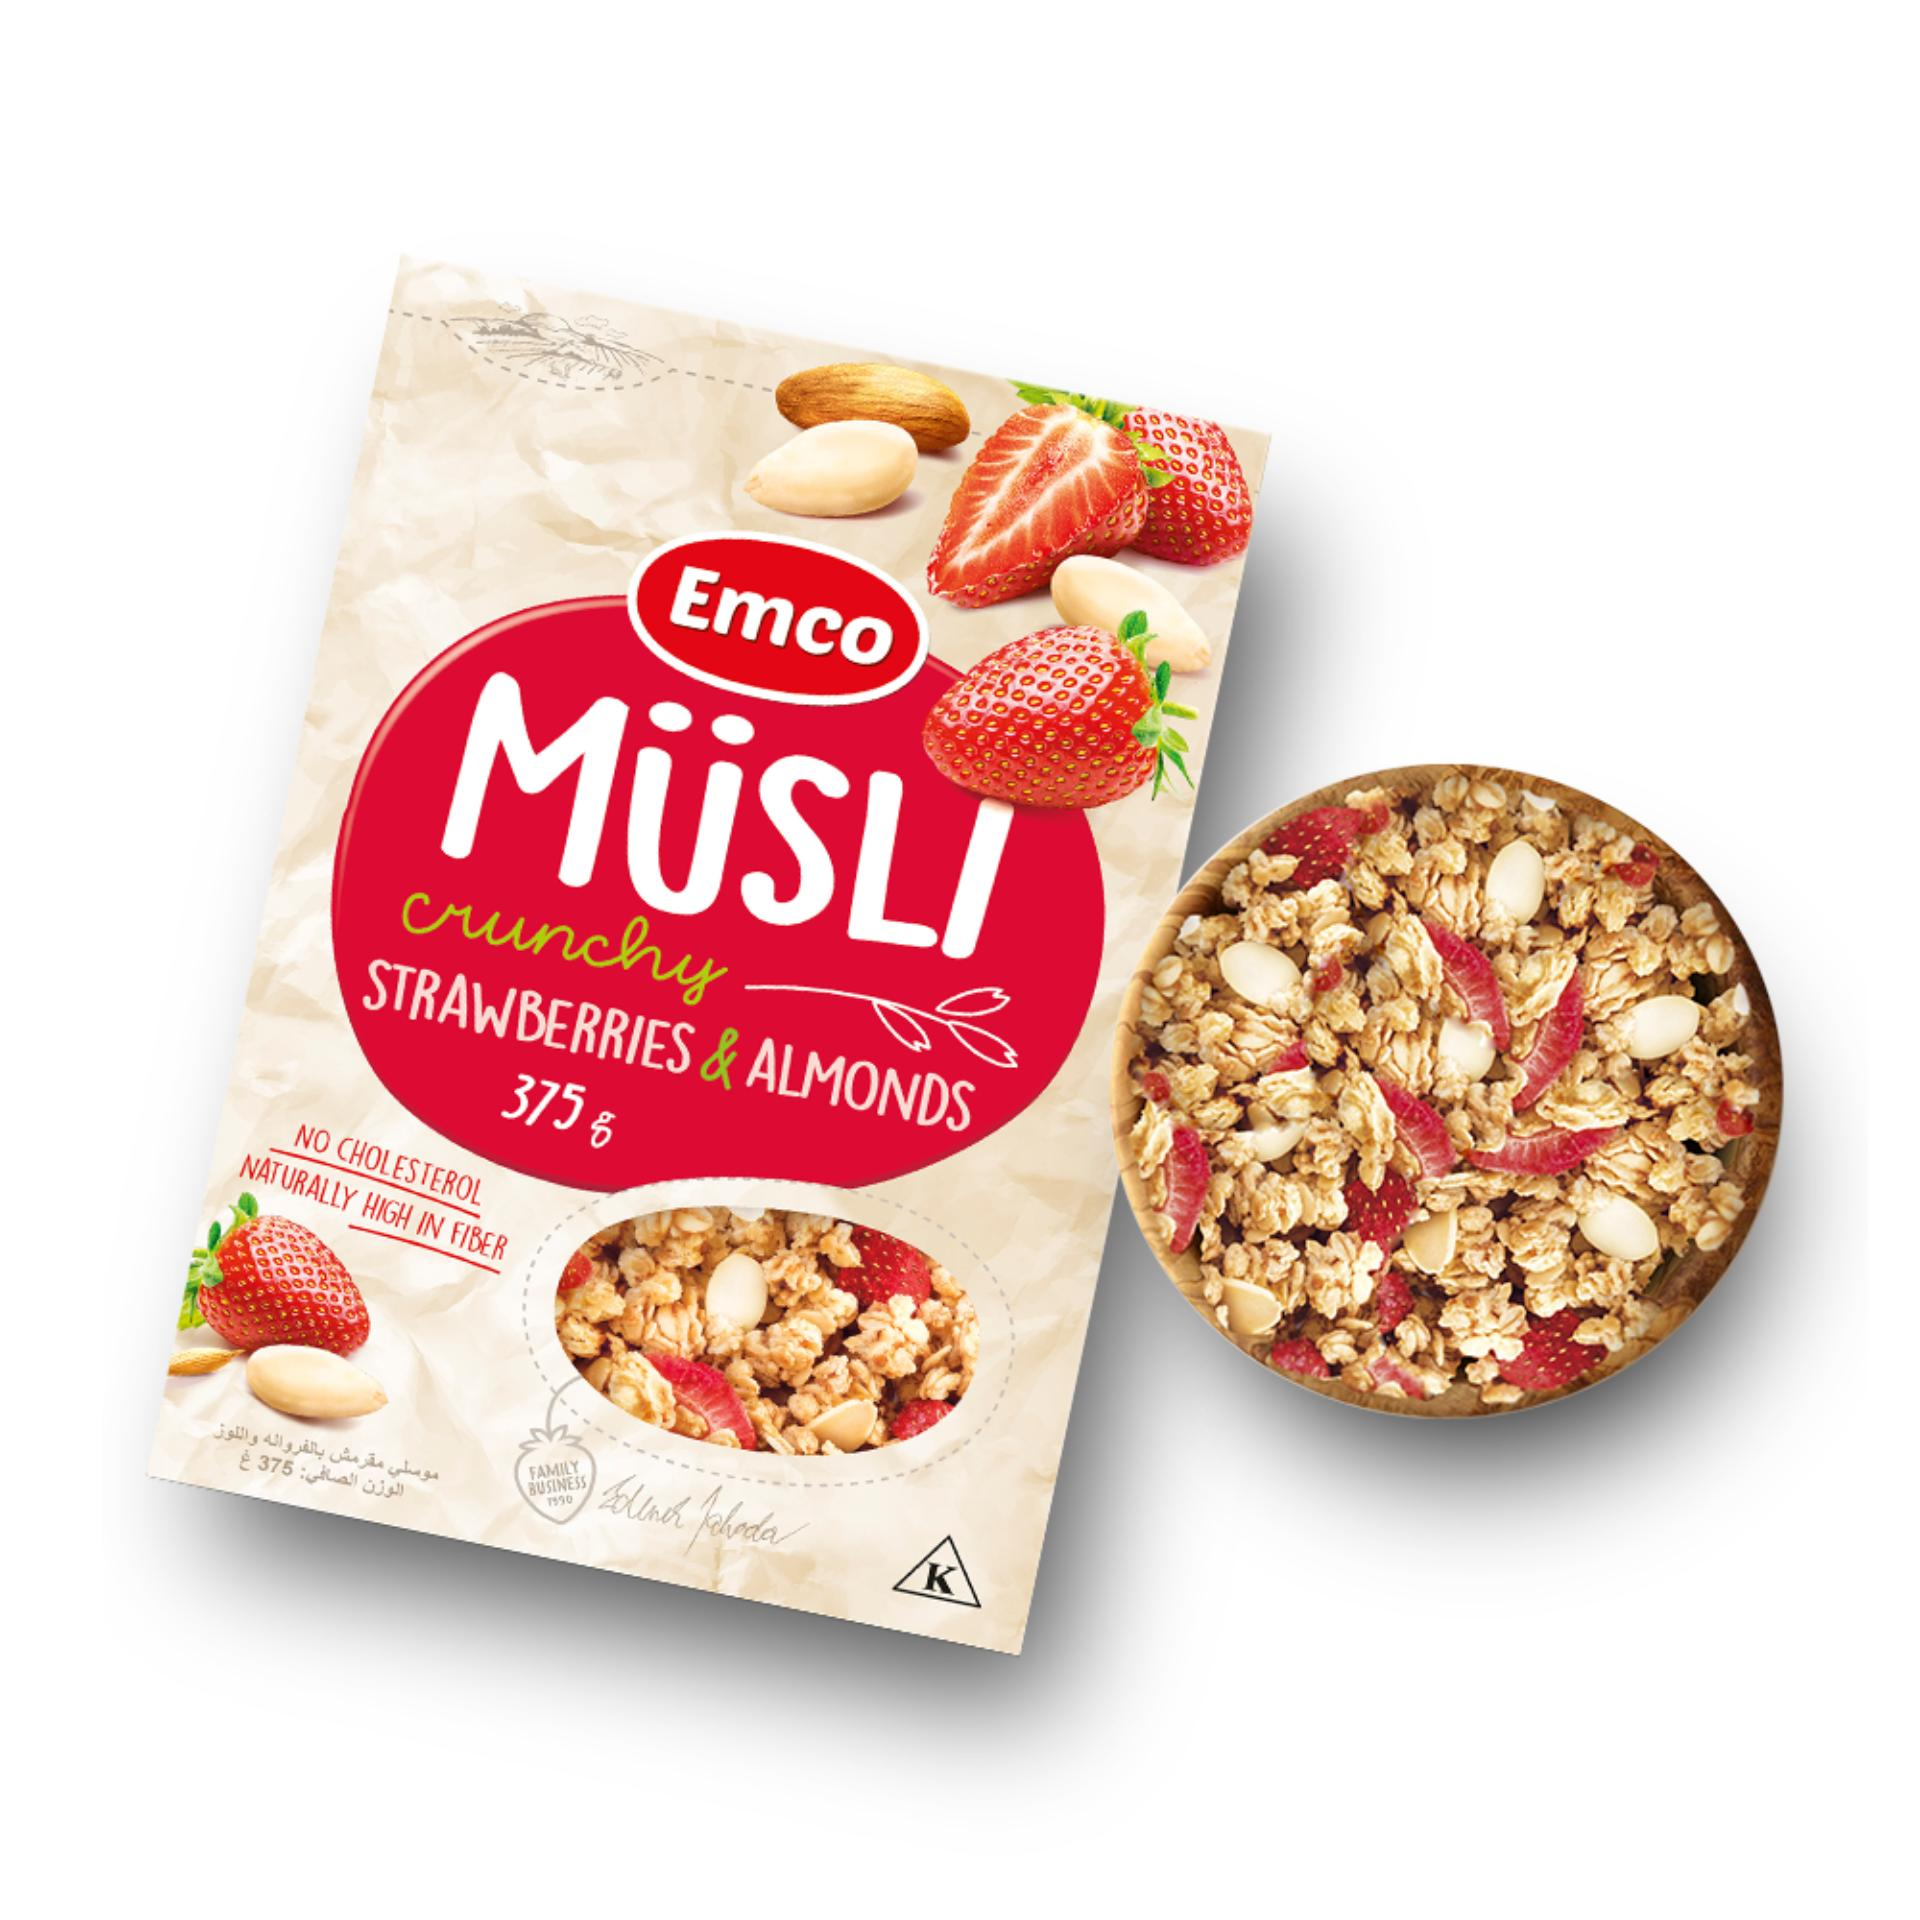 Musli Crunchy Oat Cereal with Strawberries and Almonds 375g